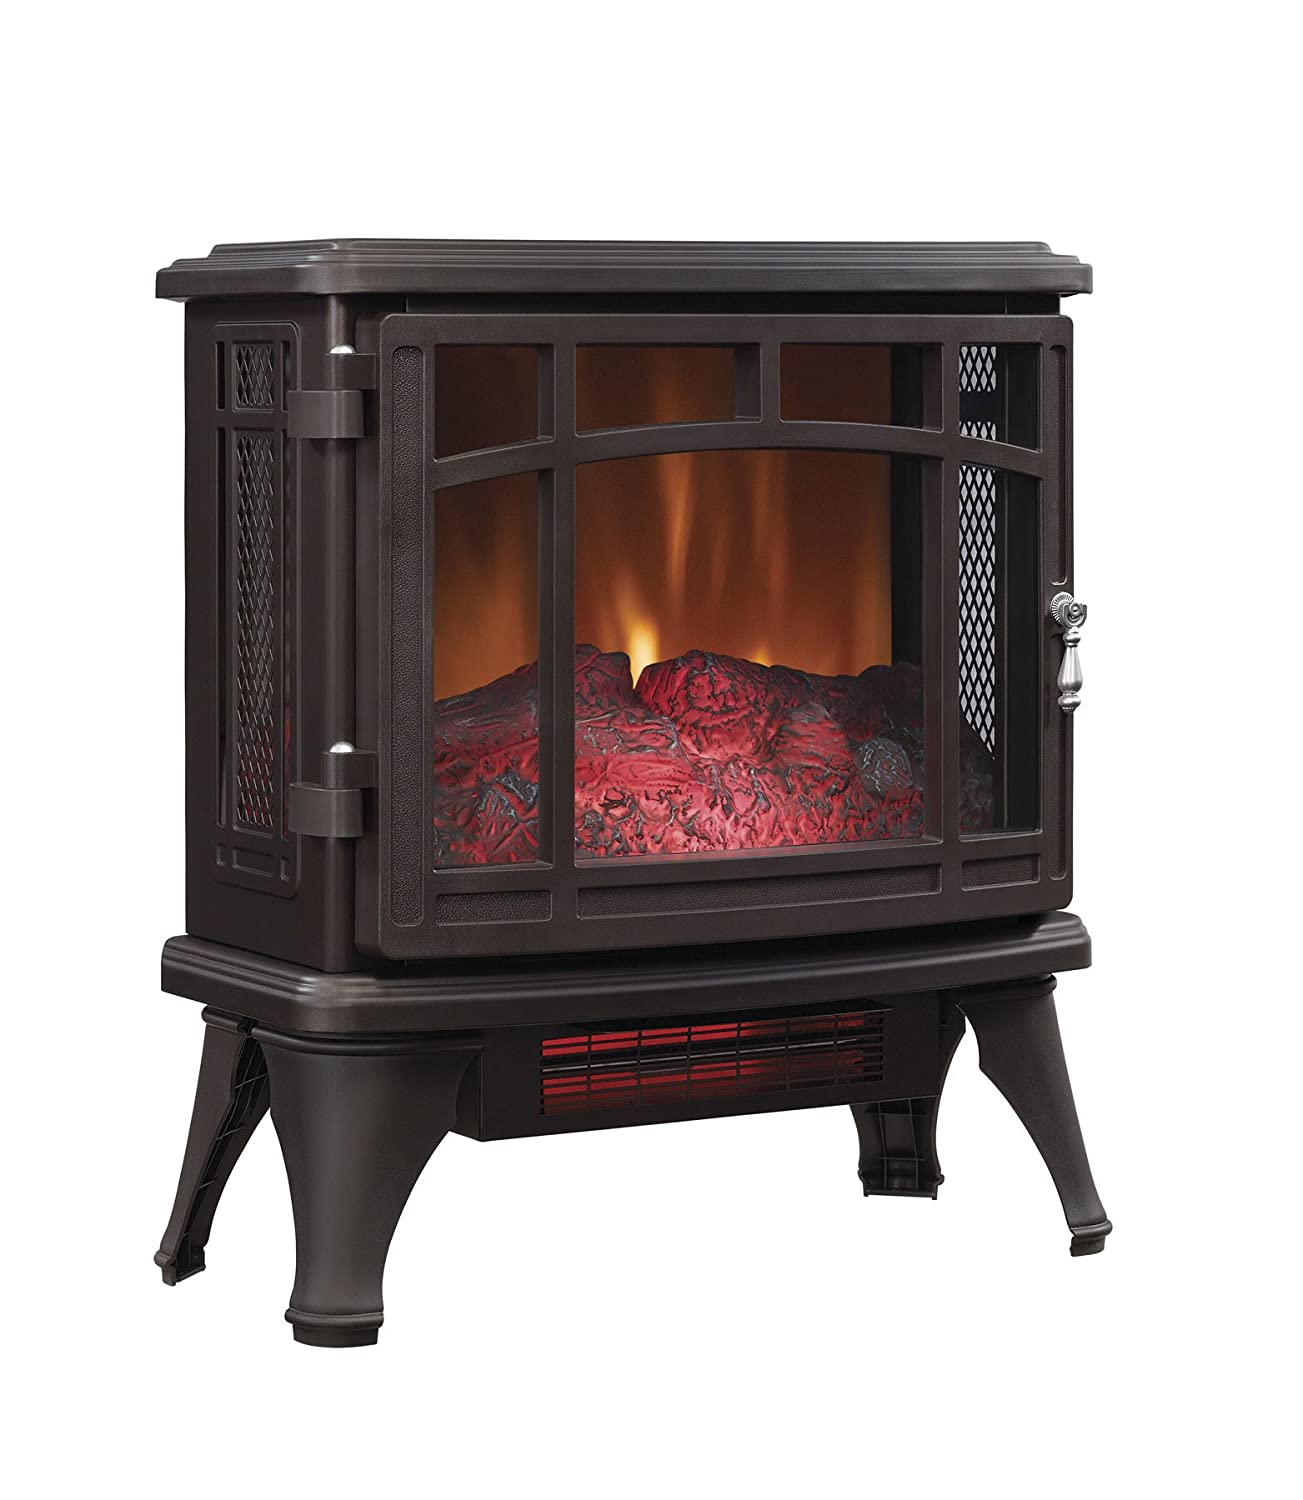 Amazon.com: Duraflame DFI-8511-03 Infrared Quartz Fireplace Stove ...